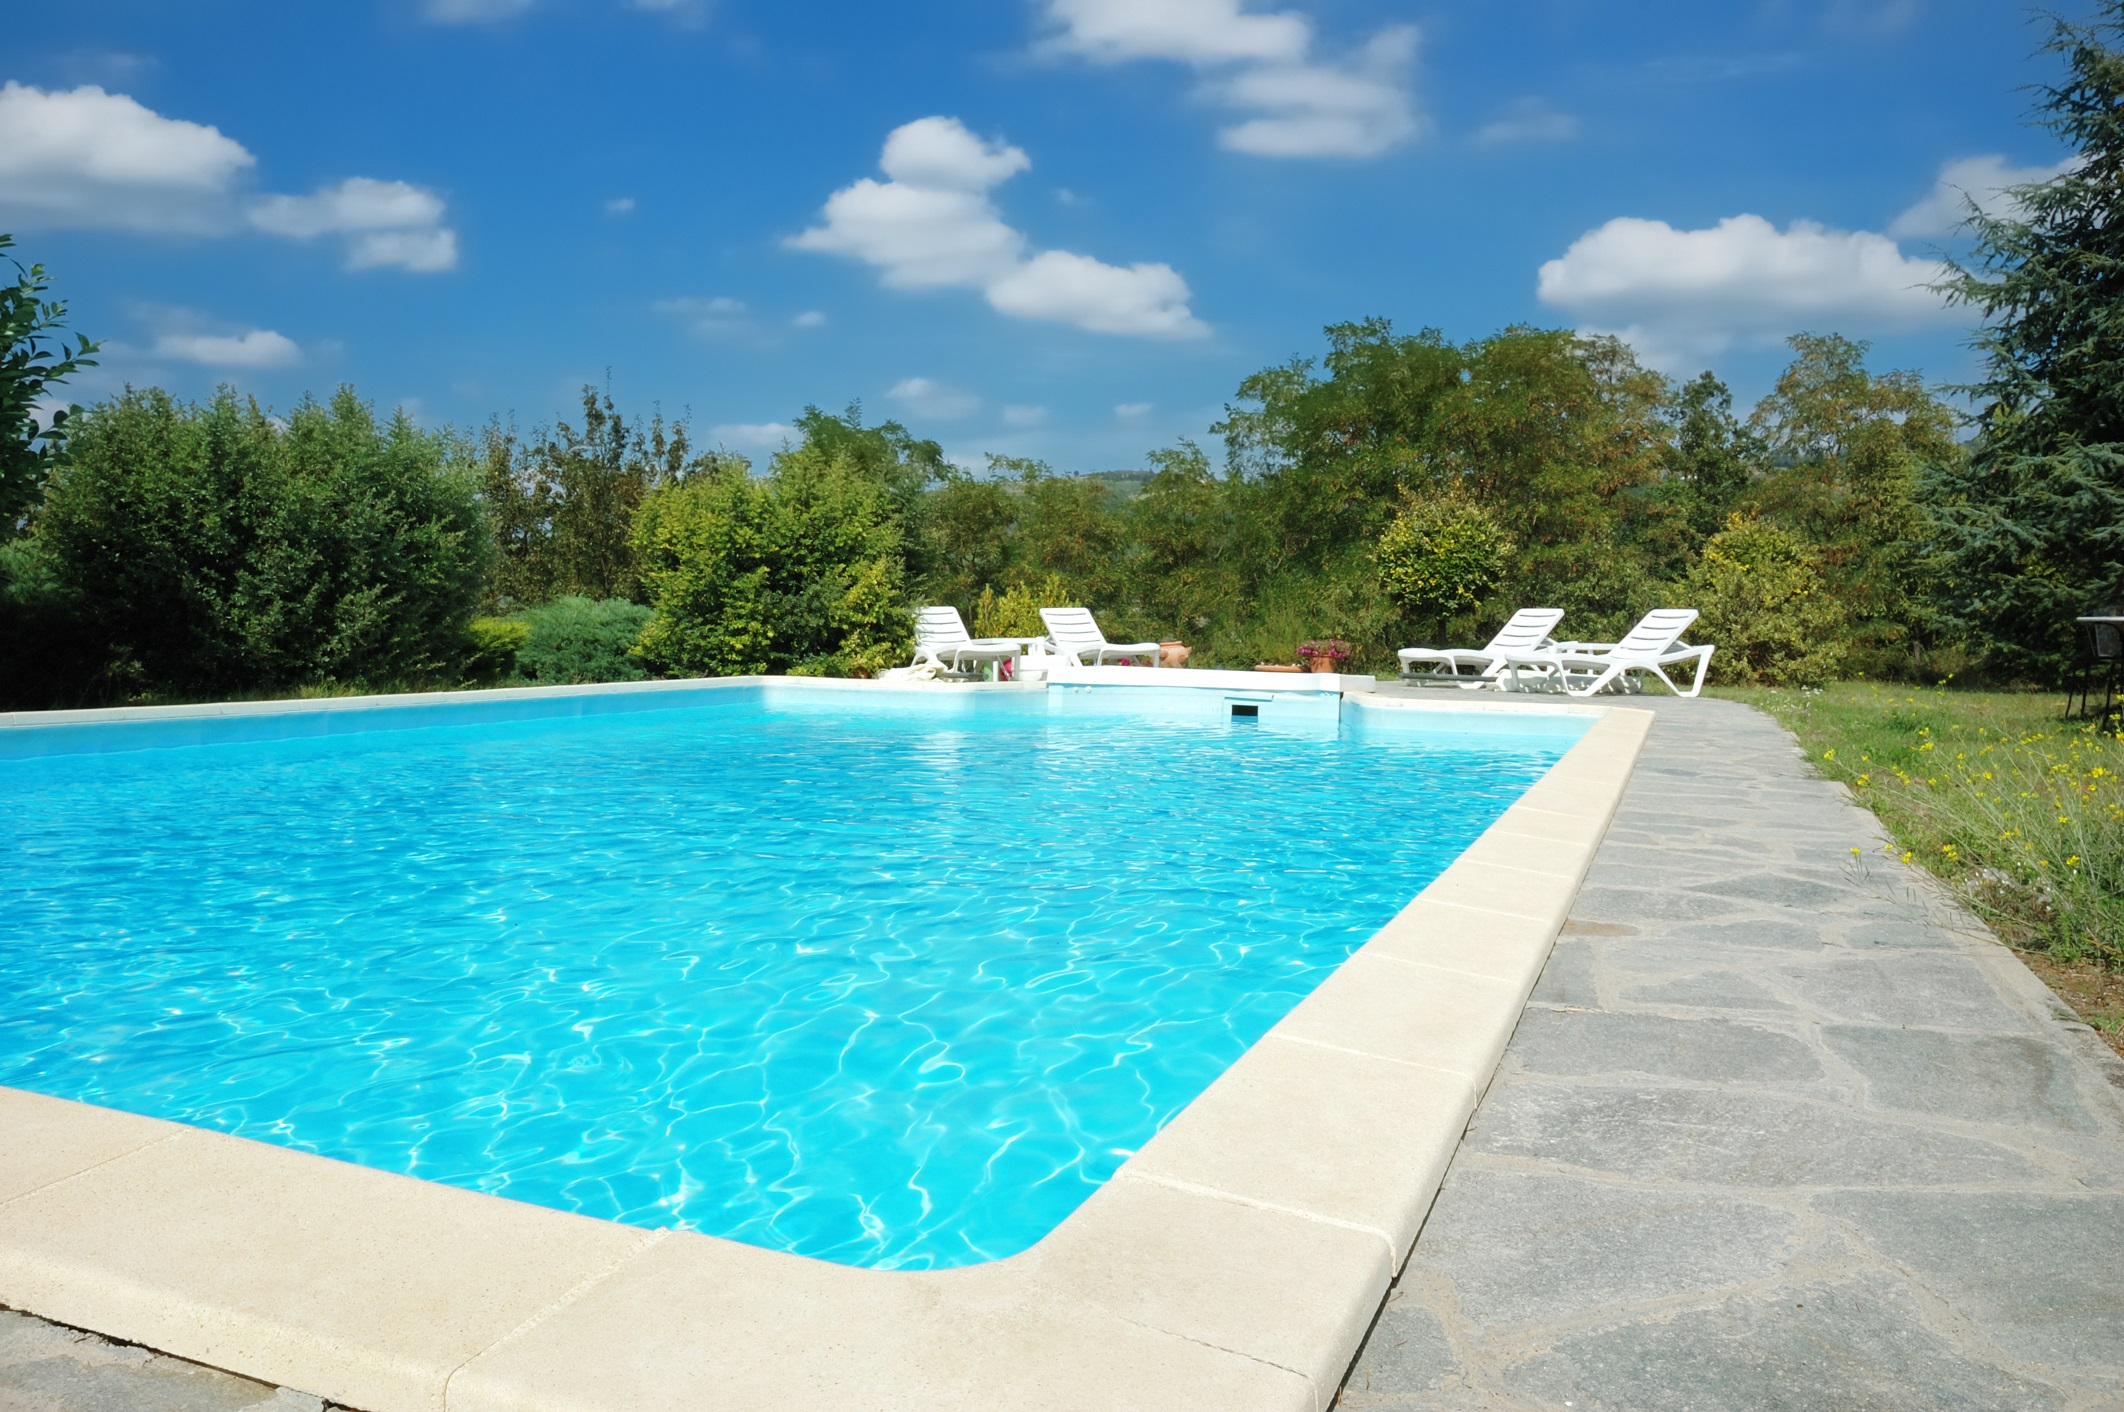 Home swimming pool with grass and trees surrounding it